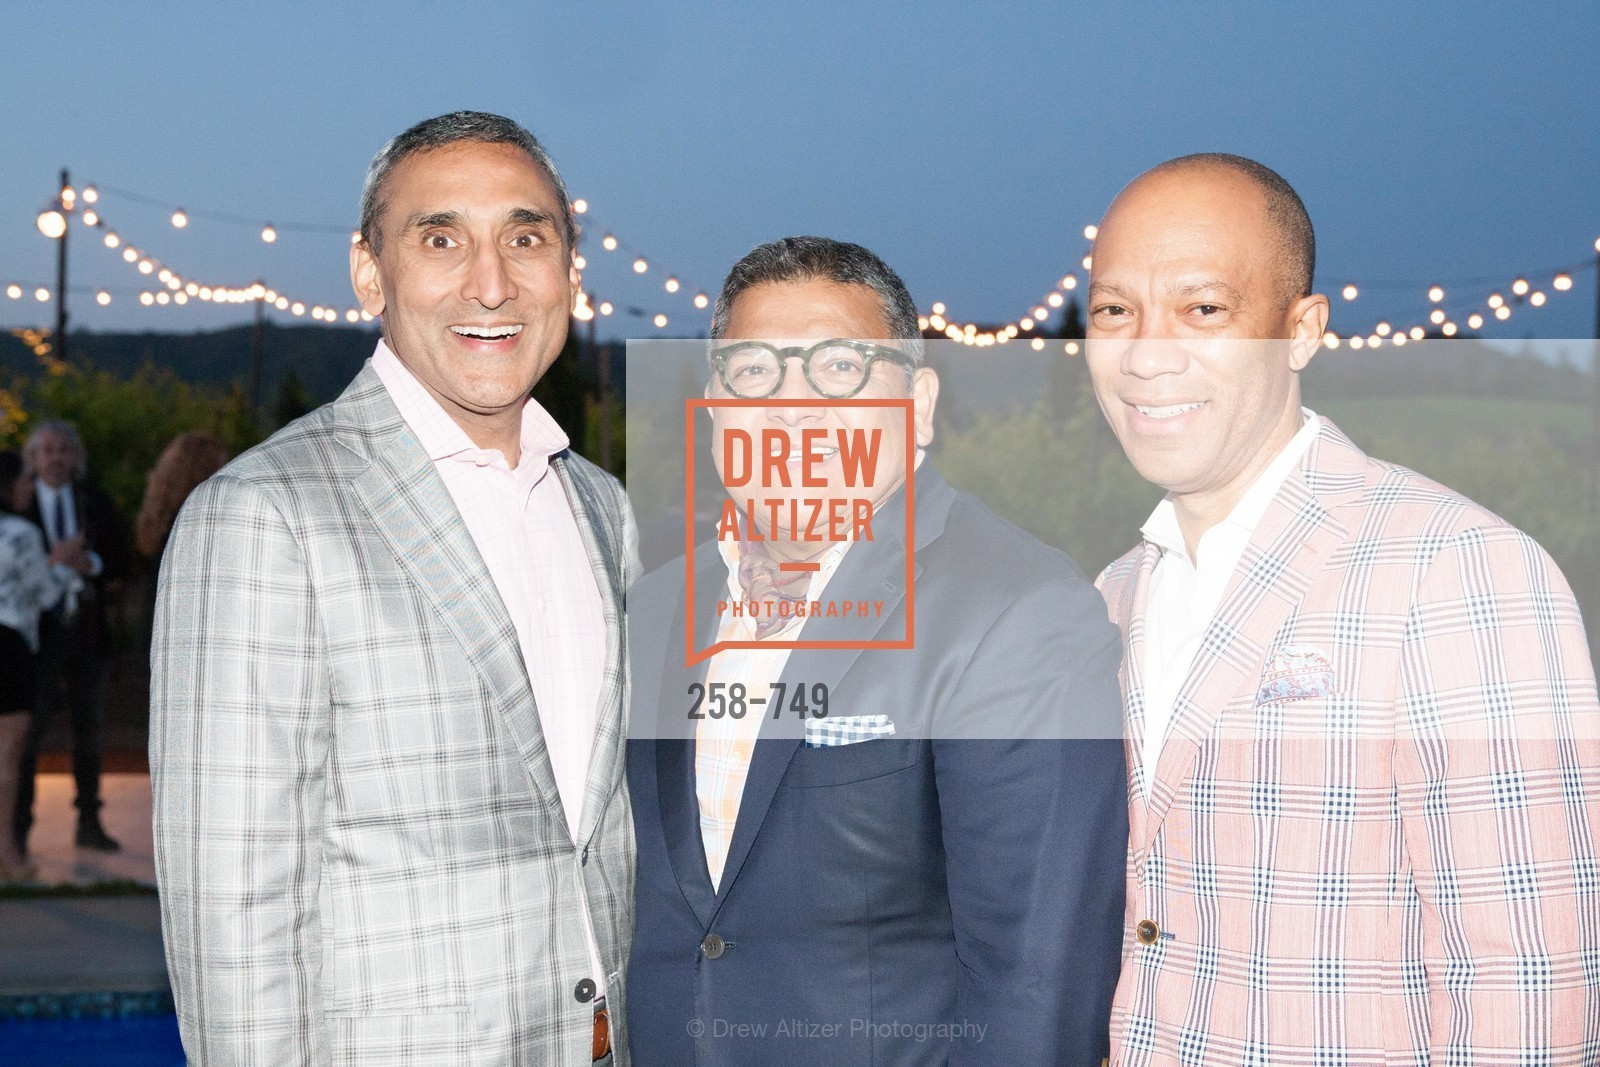 Inder Dhillon, Riccardo Benavides, Ken McNeely, PETER COPPING Meets and Greets OSCAR DELA RENTA Clients and Associates at NEIMAN MARCUS, US, May 23rd, 2015,Drew Altizer, Drew Altizer Photography, full-service agency, private events, San Francisco photographer, photographer california